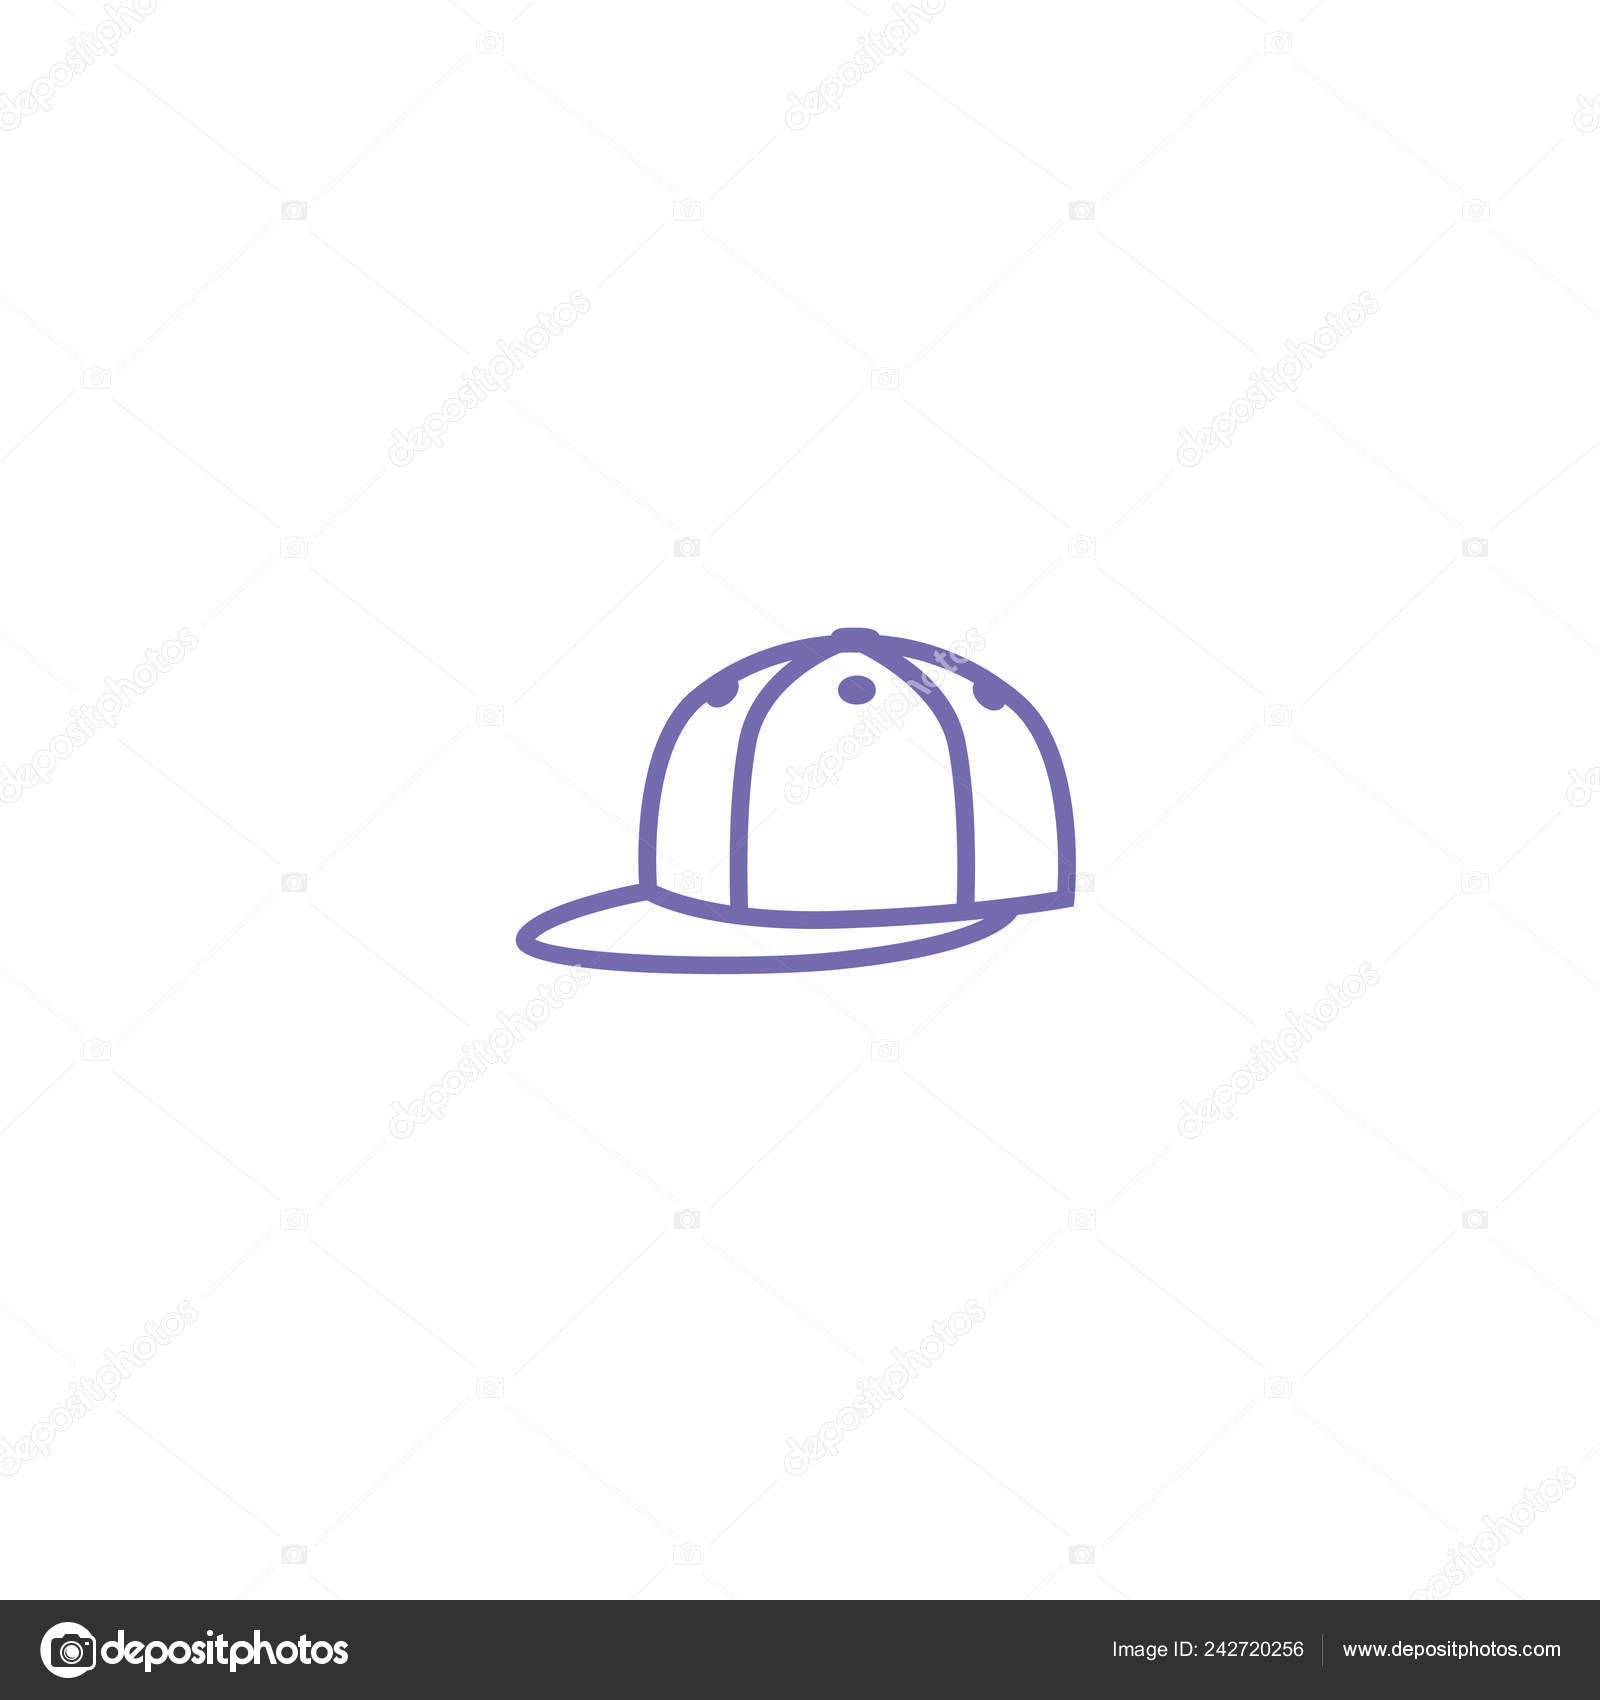 cap web icon — Stock Vector © LovArt  242720256 2f49db432b4